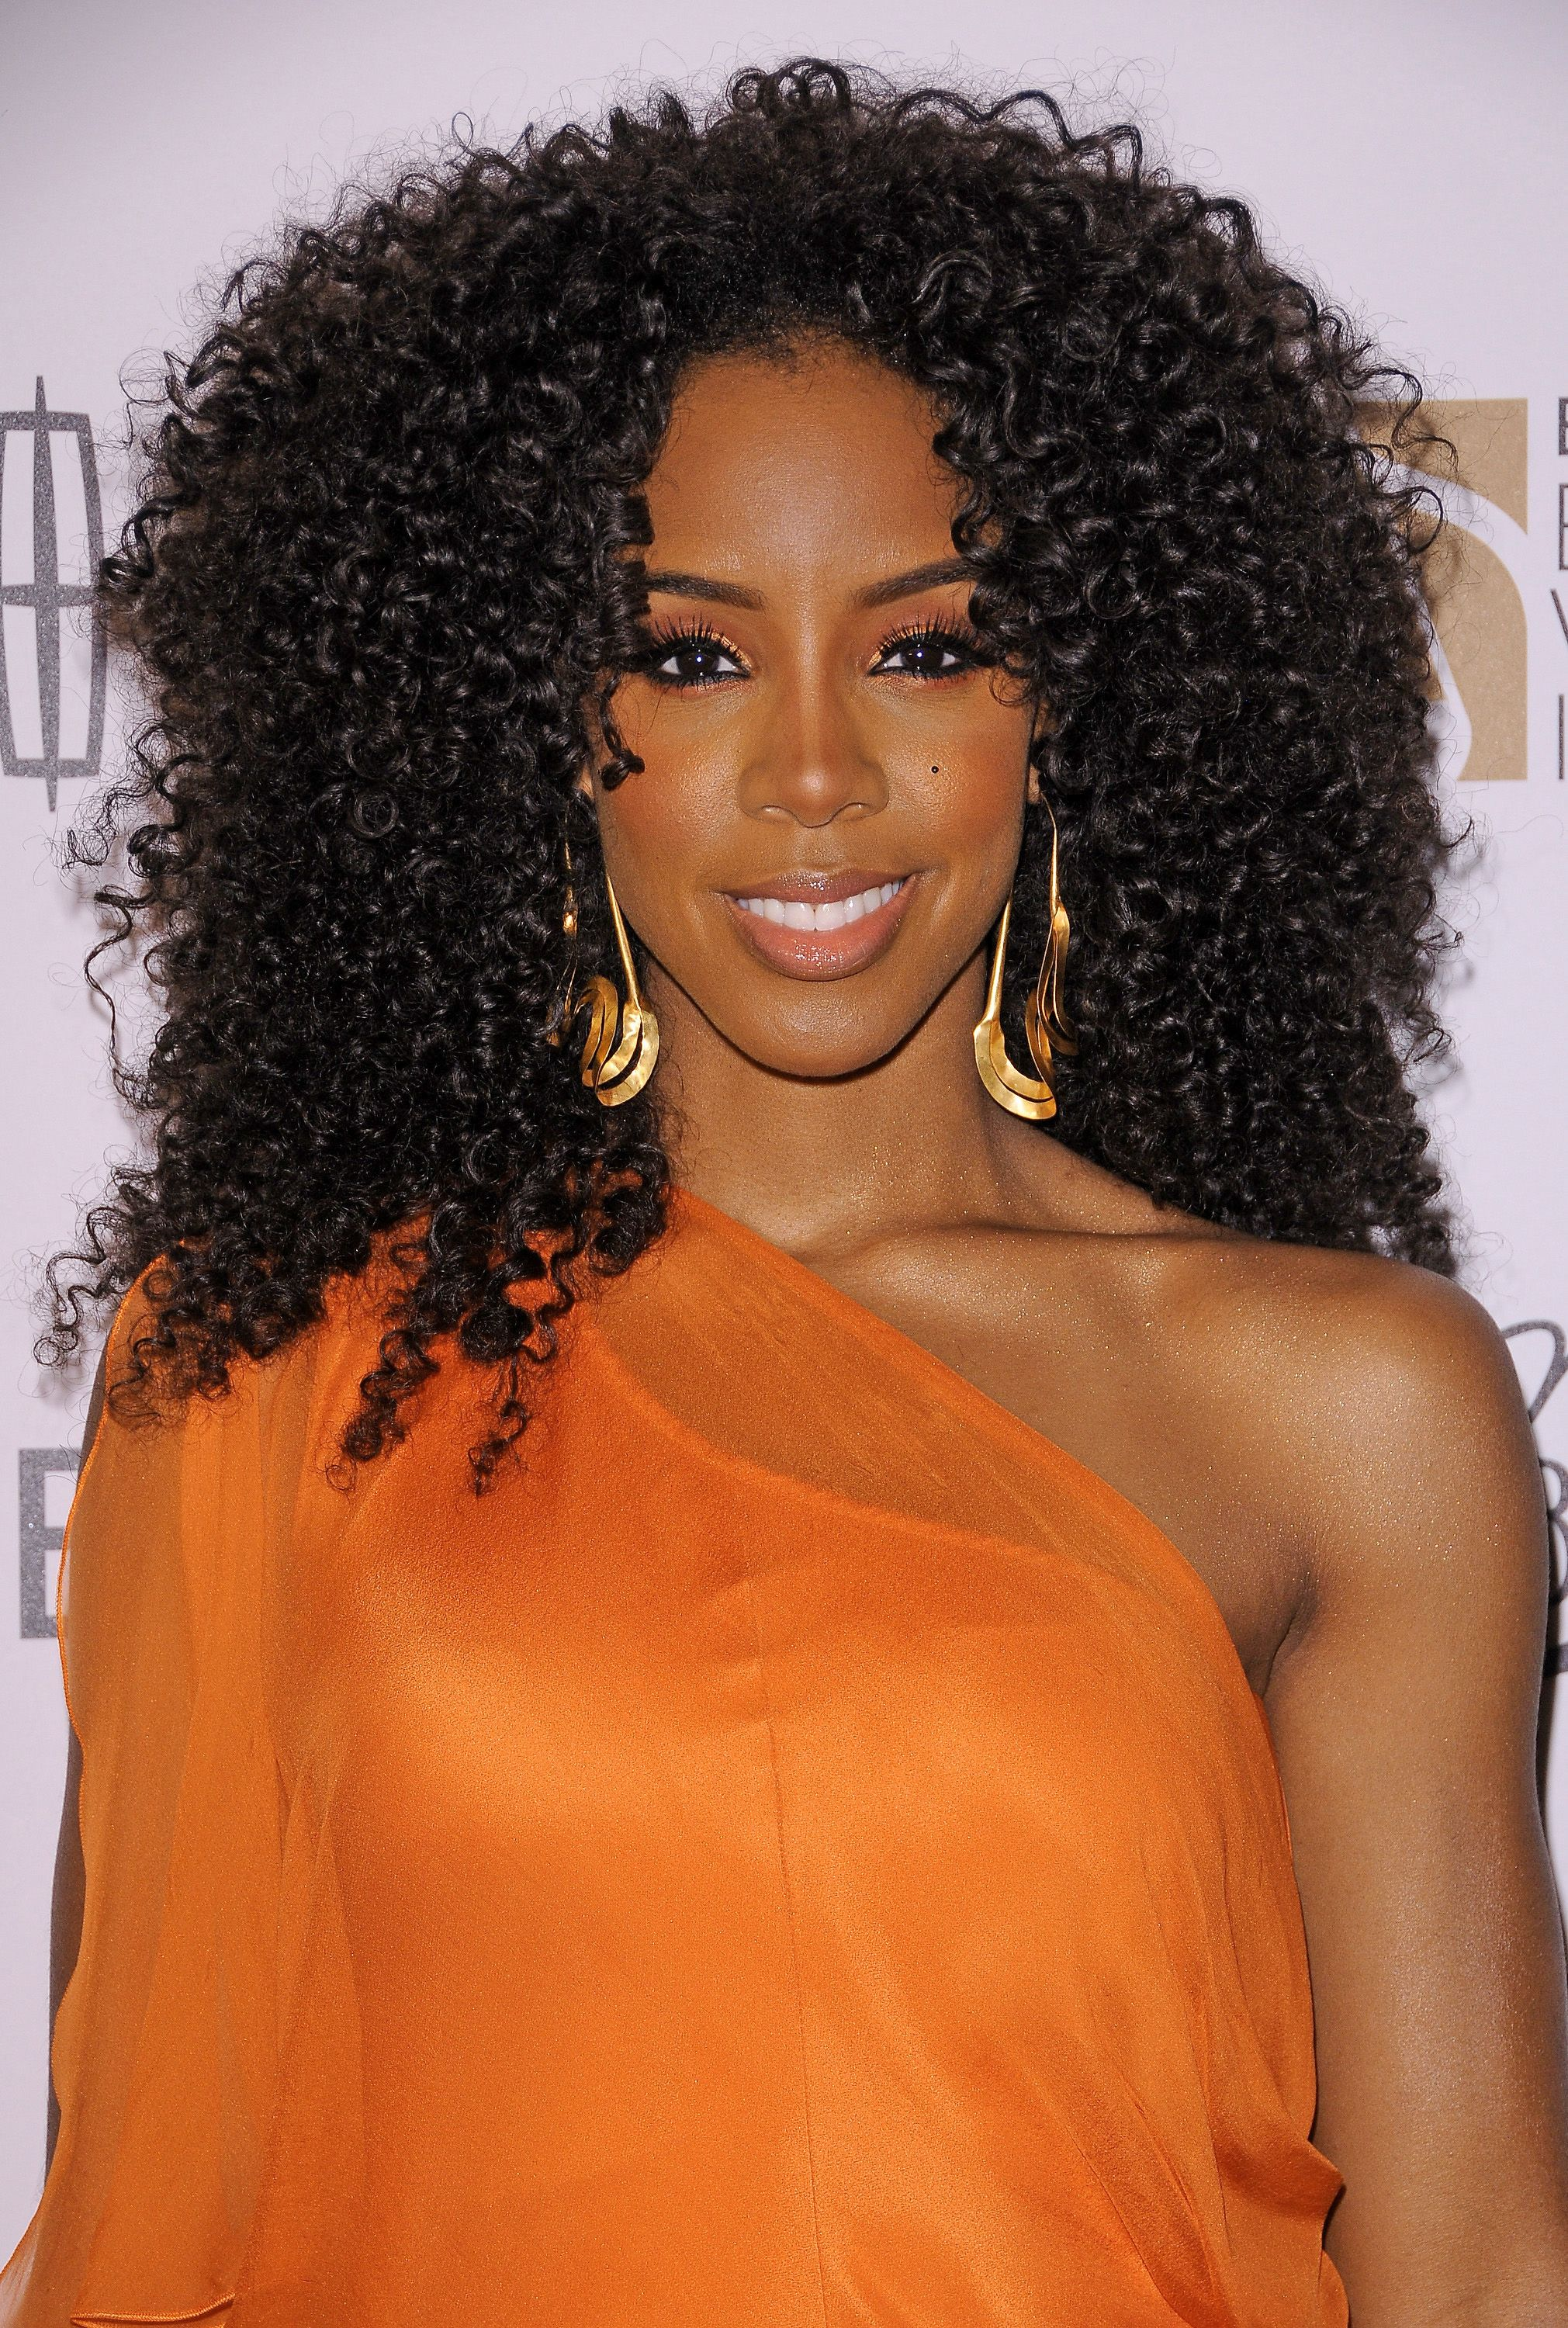 Celeb Beauty Kelly Rowland S Makeup Evolution Essence Curly Weave Hairstyles Braided Hairstyles Curly Hair Styles